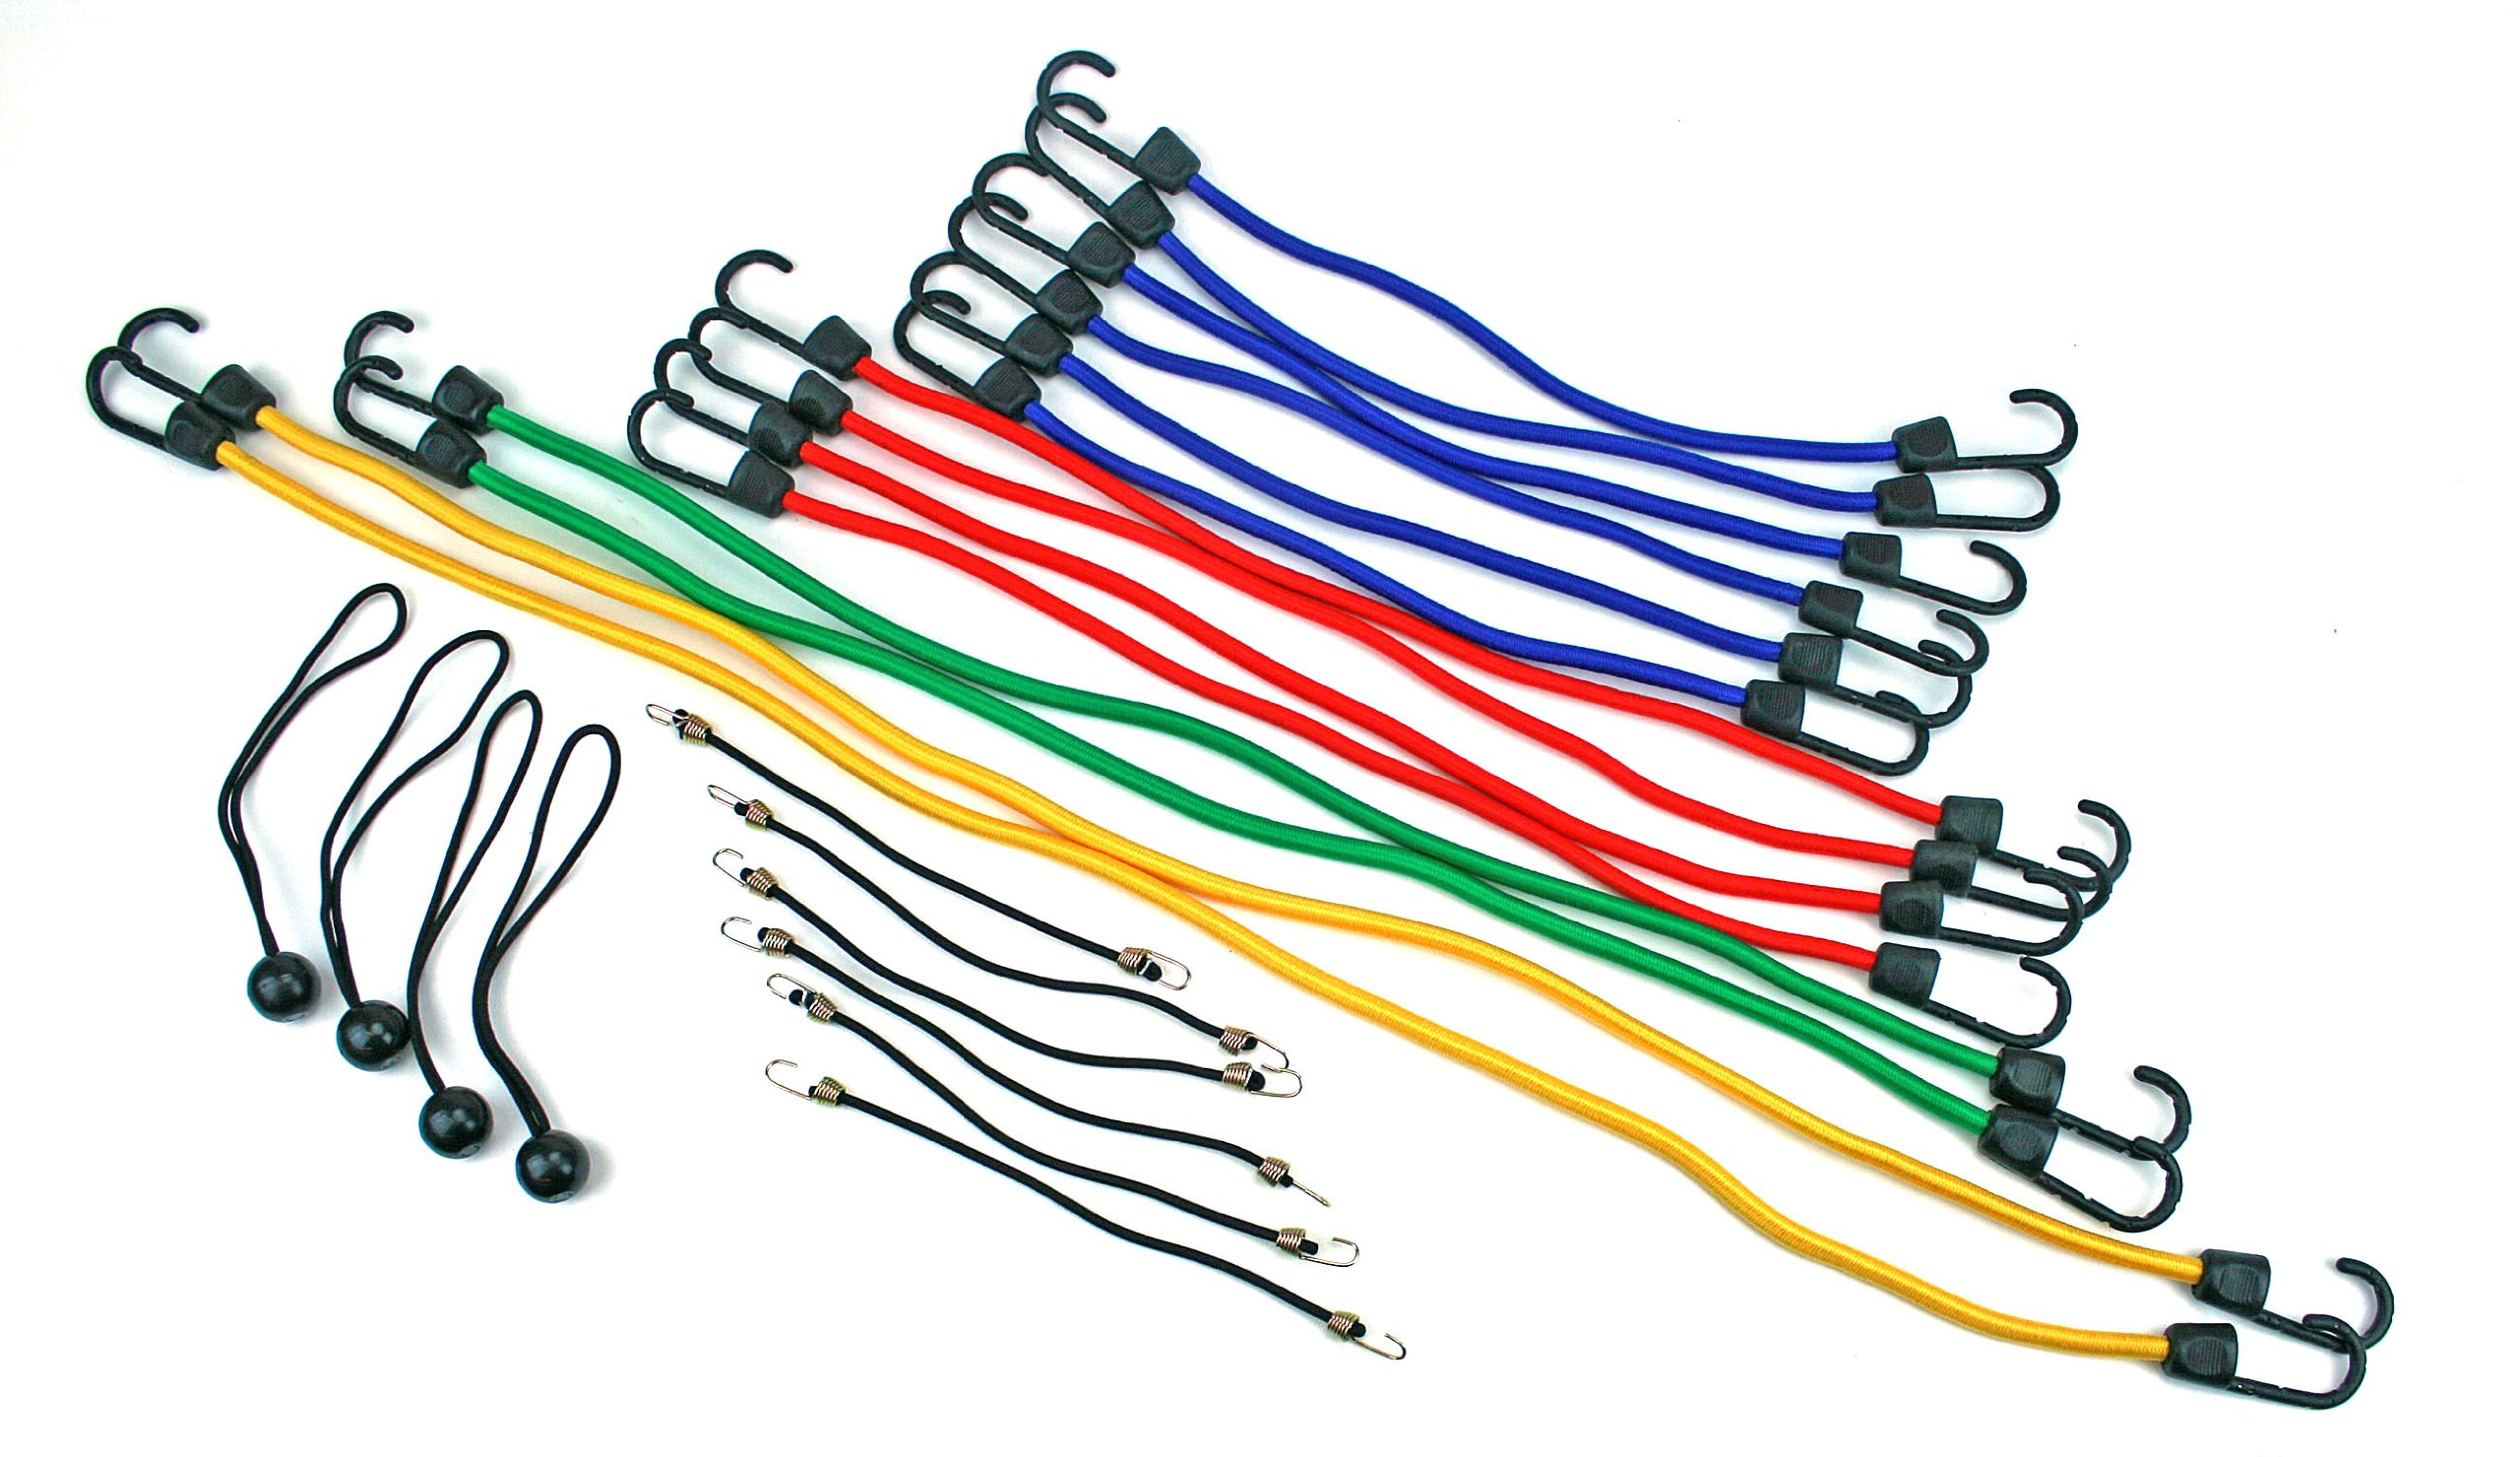 Highland 9008400 Bungee Cord Assortment Jar and Canopy Ties (24-Piece Set)